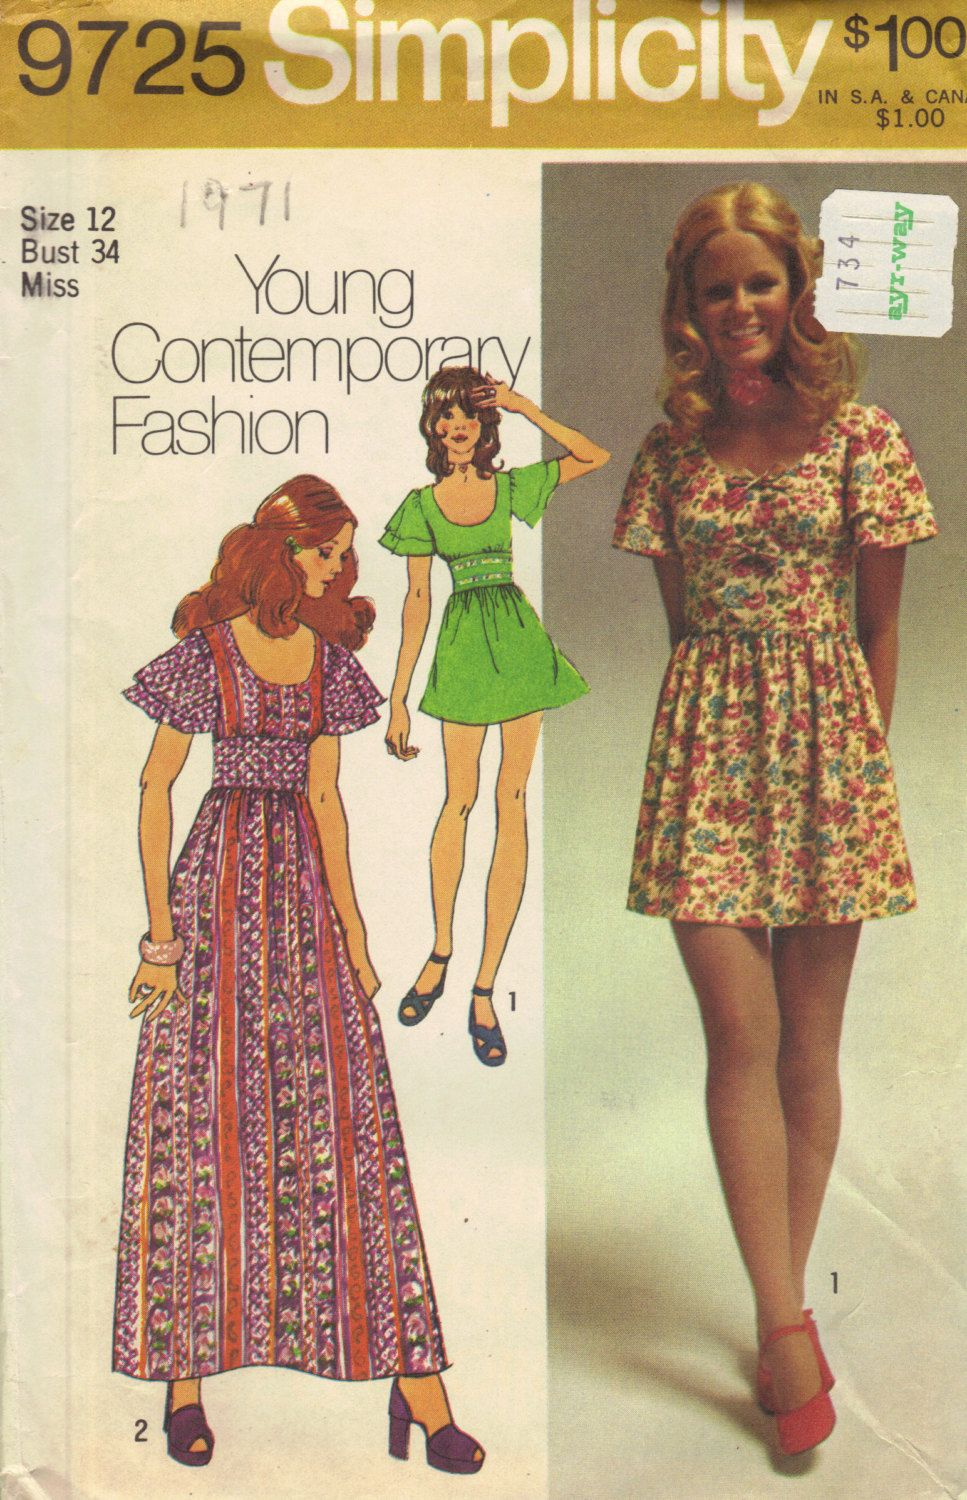 Simplicity Retro 70s Sewing Pattern Hippie Style Dress Maxi Midi ...